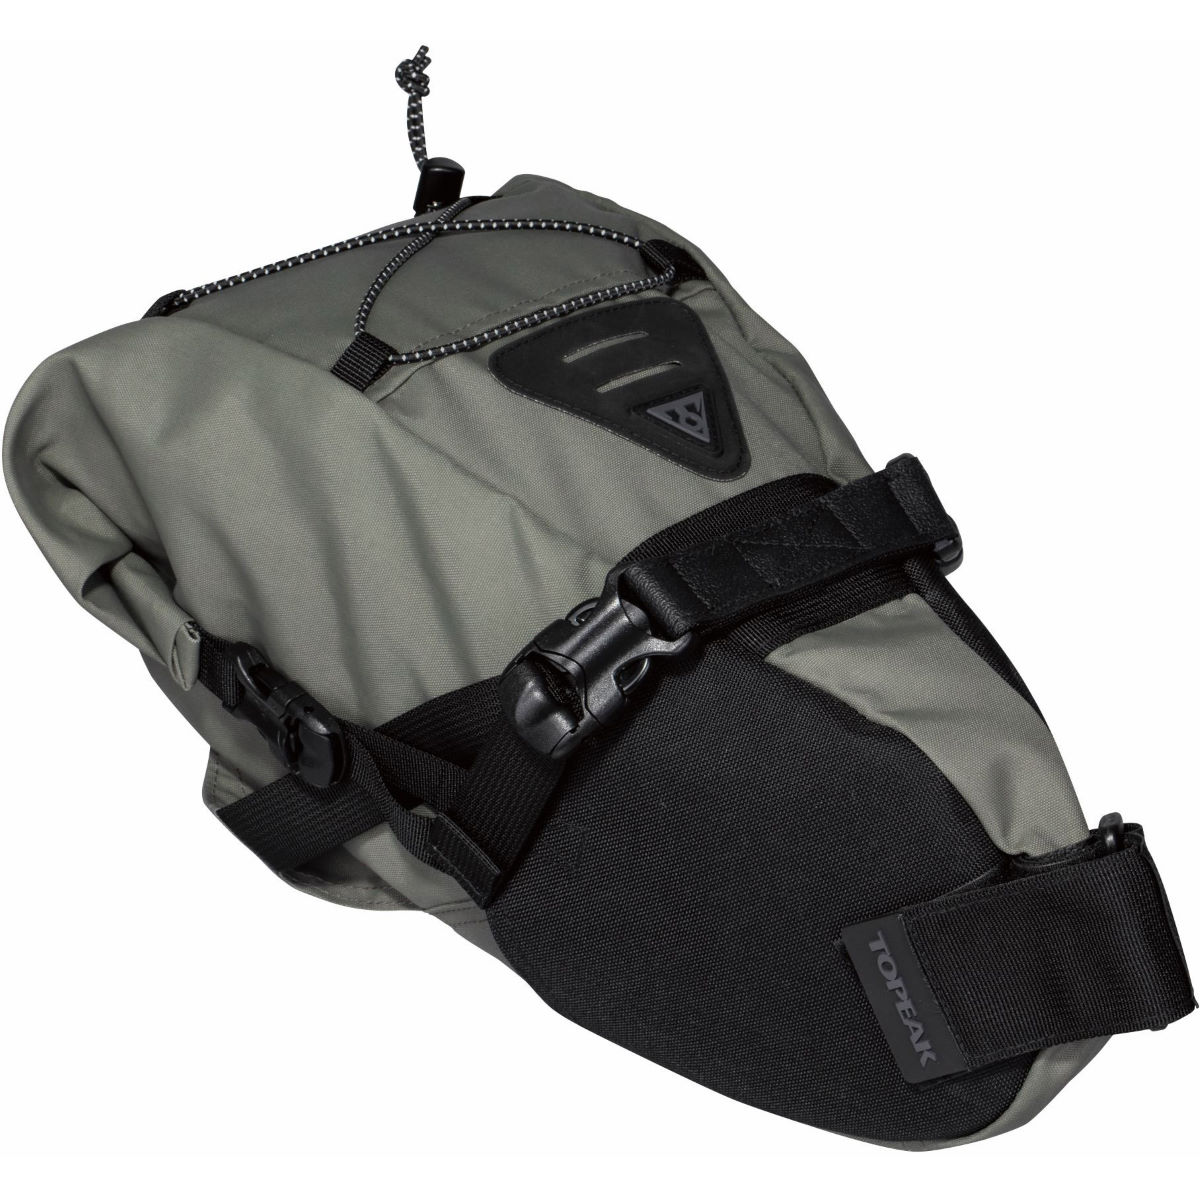 Topeak Topeak BackLoader Saddle Bag   Saddle Bags